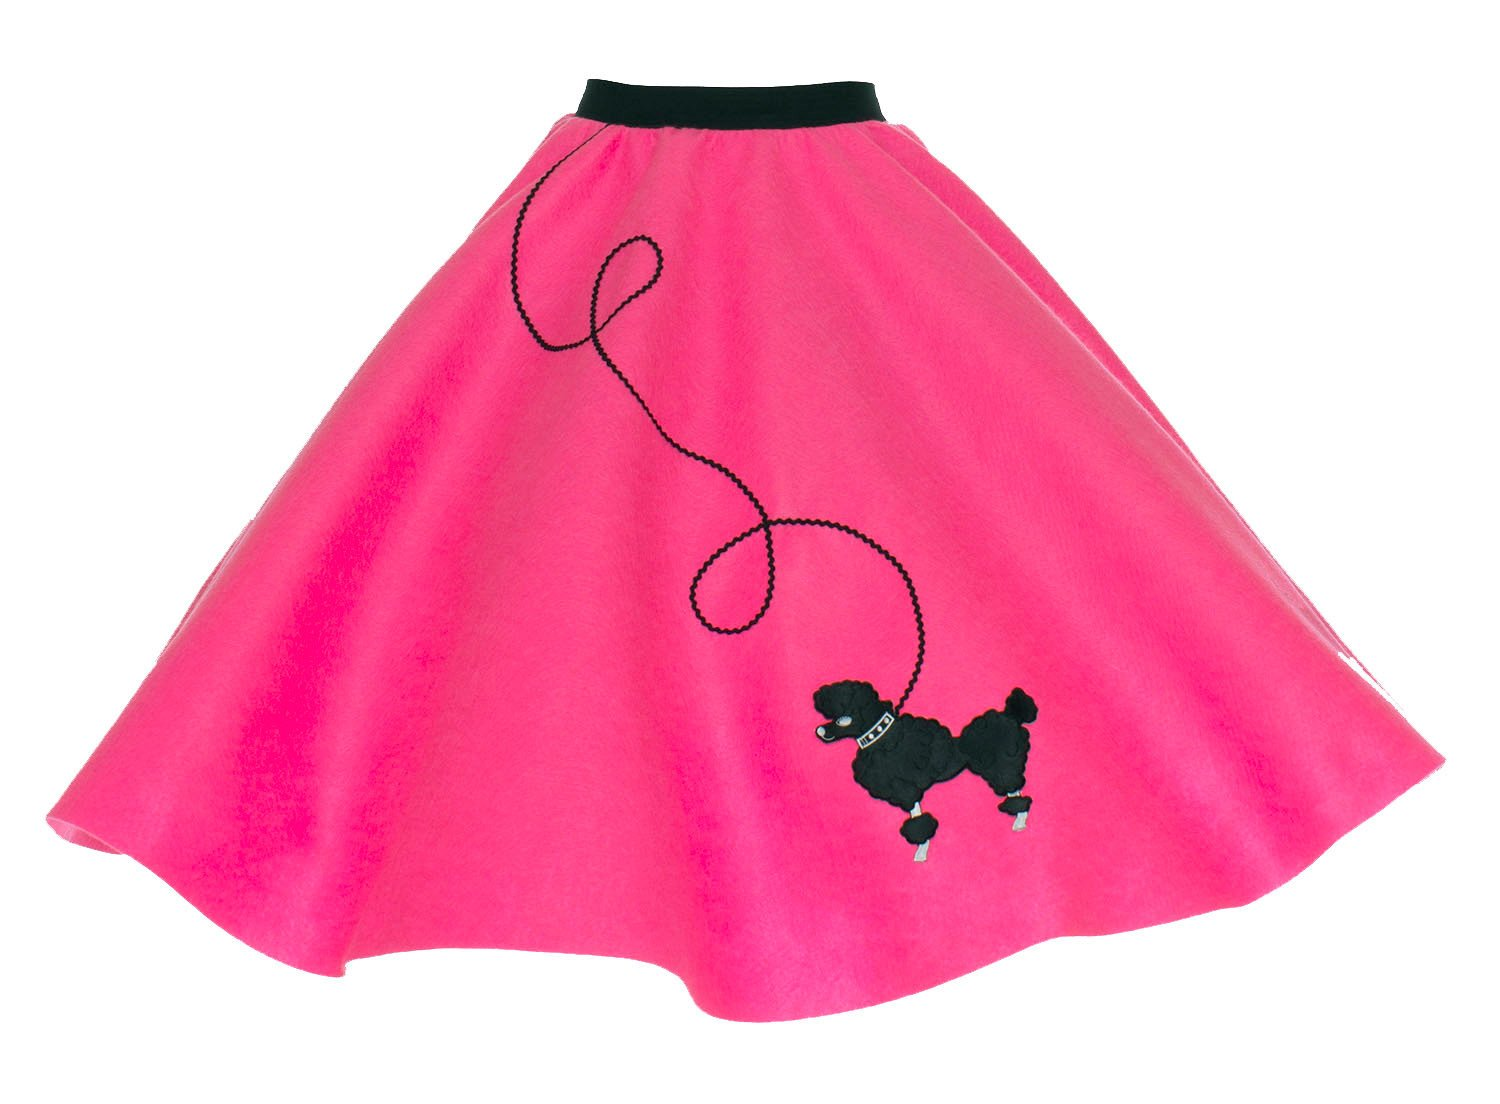 Hip Hop 50s Shop Adult Poodle Skirt Hot Pink M/L